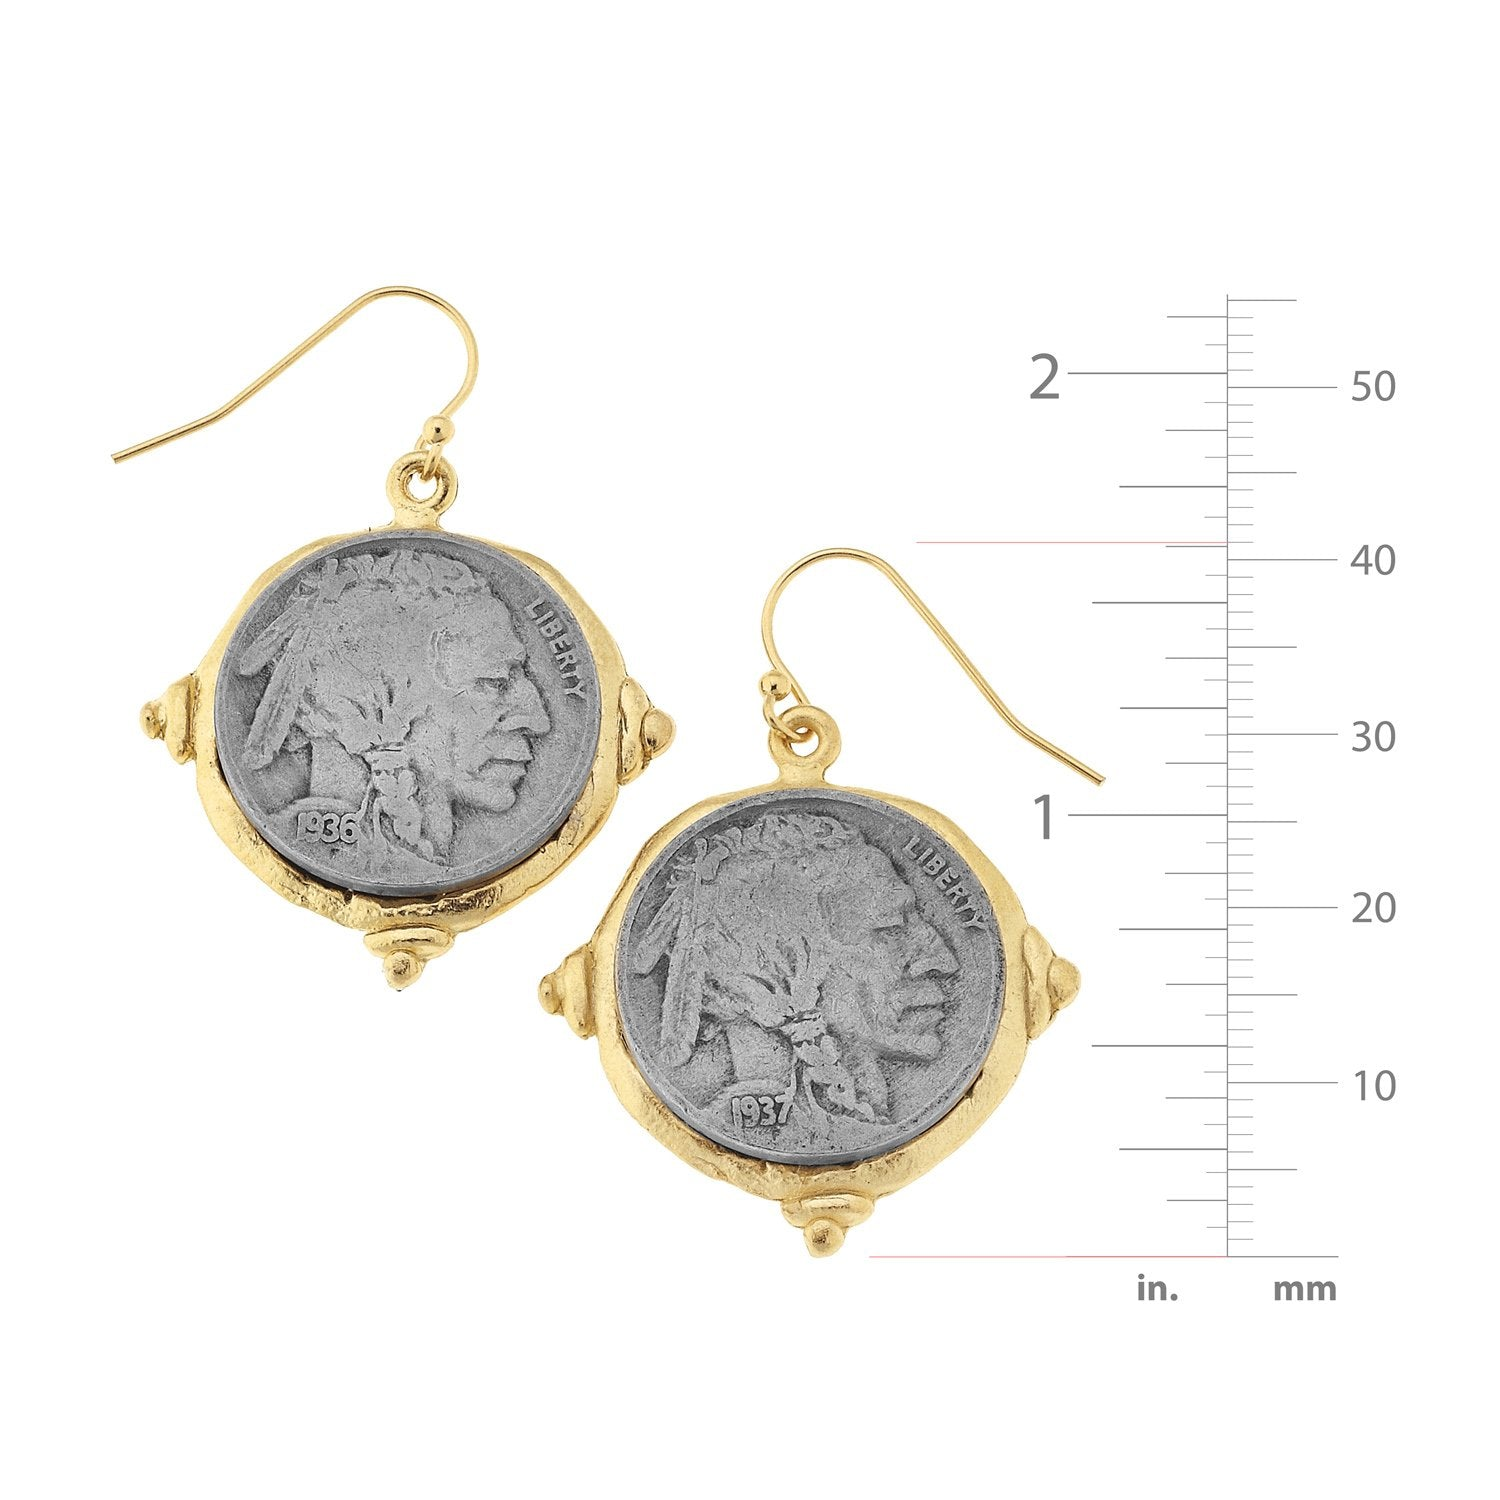 American Indian Nickel Earrings